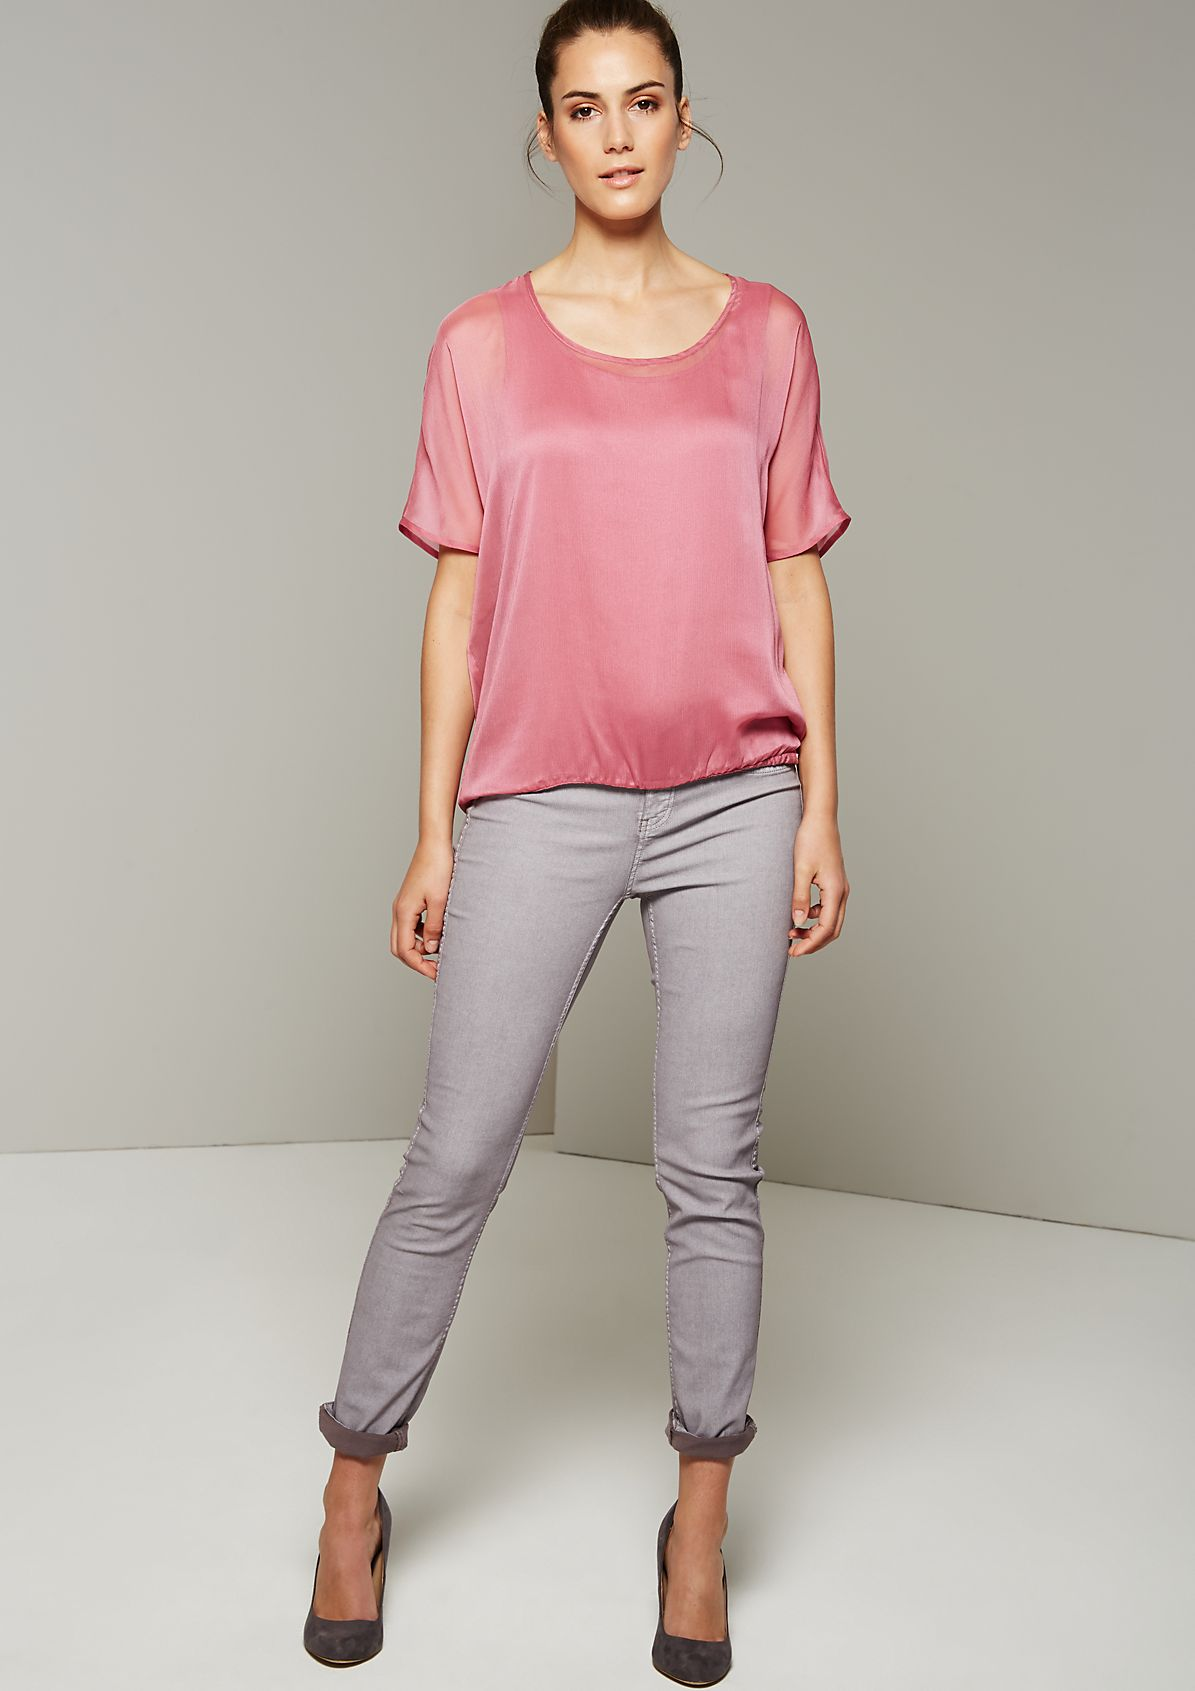 Semi-sheer short sleeve blouse with decorative design features from s.Oliver